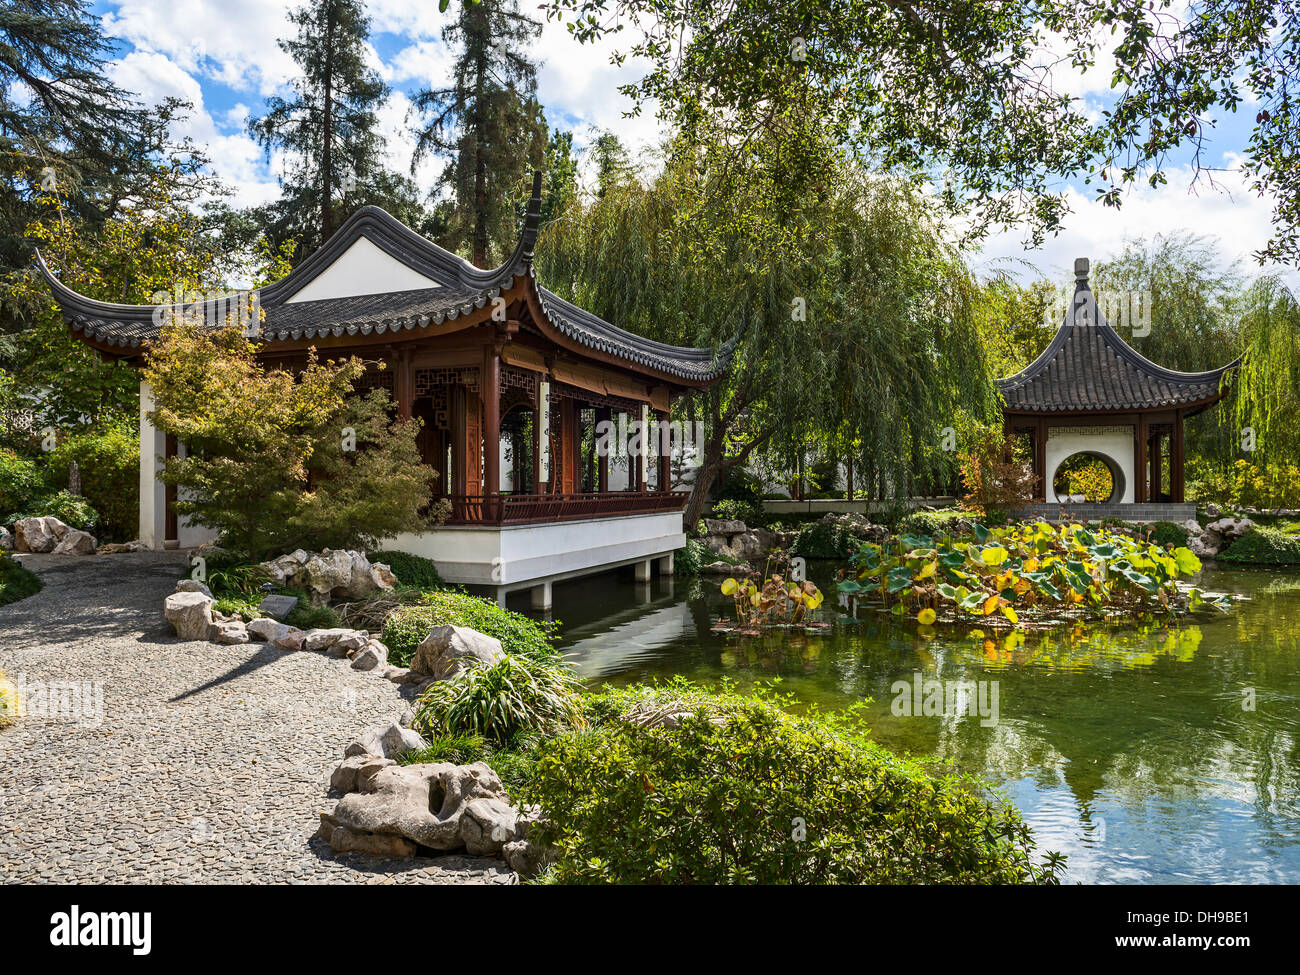 Beautiful Chinese Garden At The Huntington Library Stock Photo Royalty Free Image 62286841 Alamy